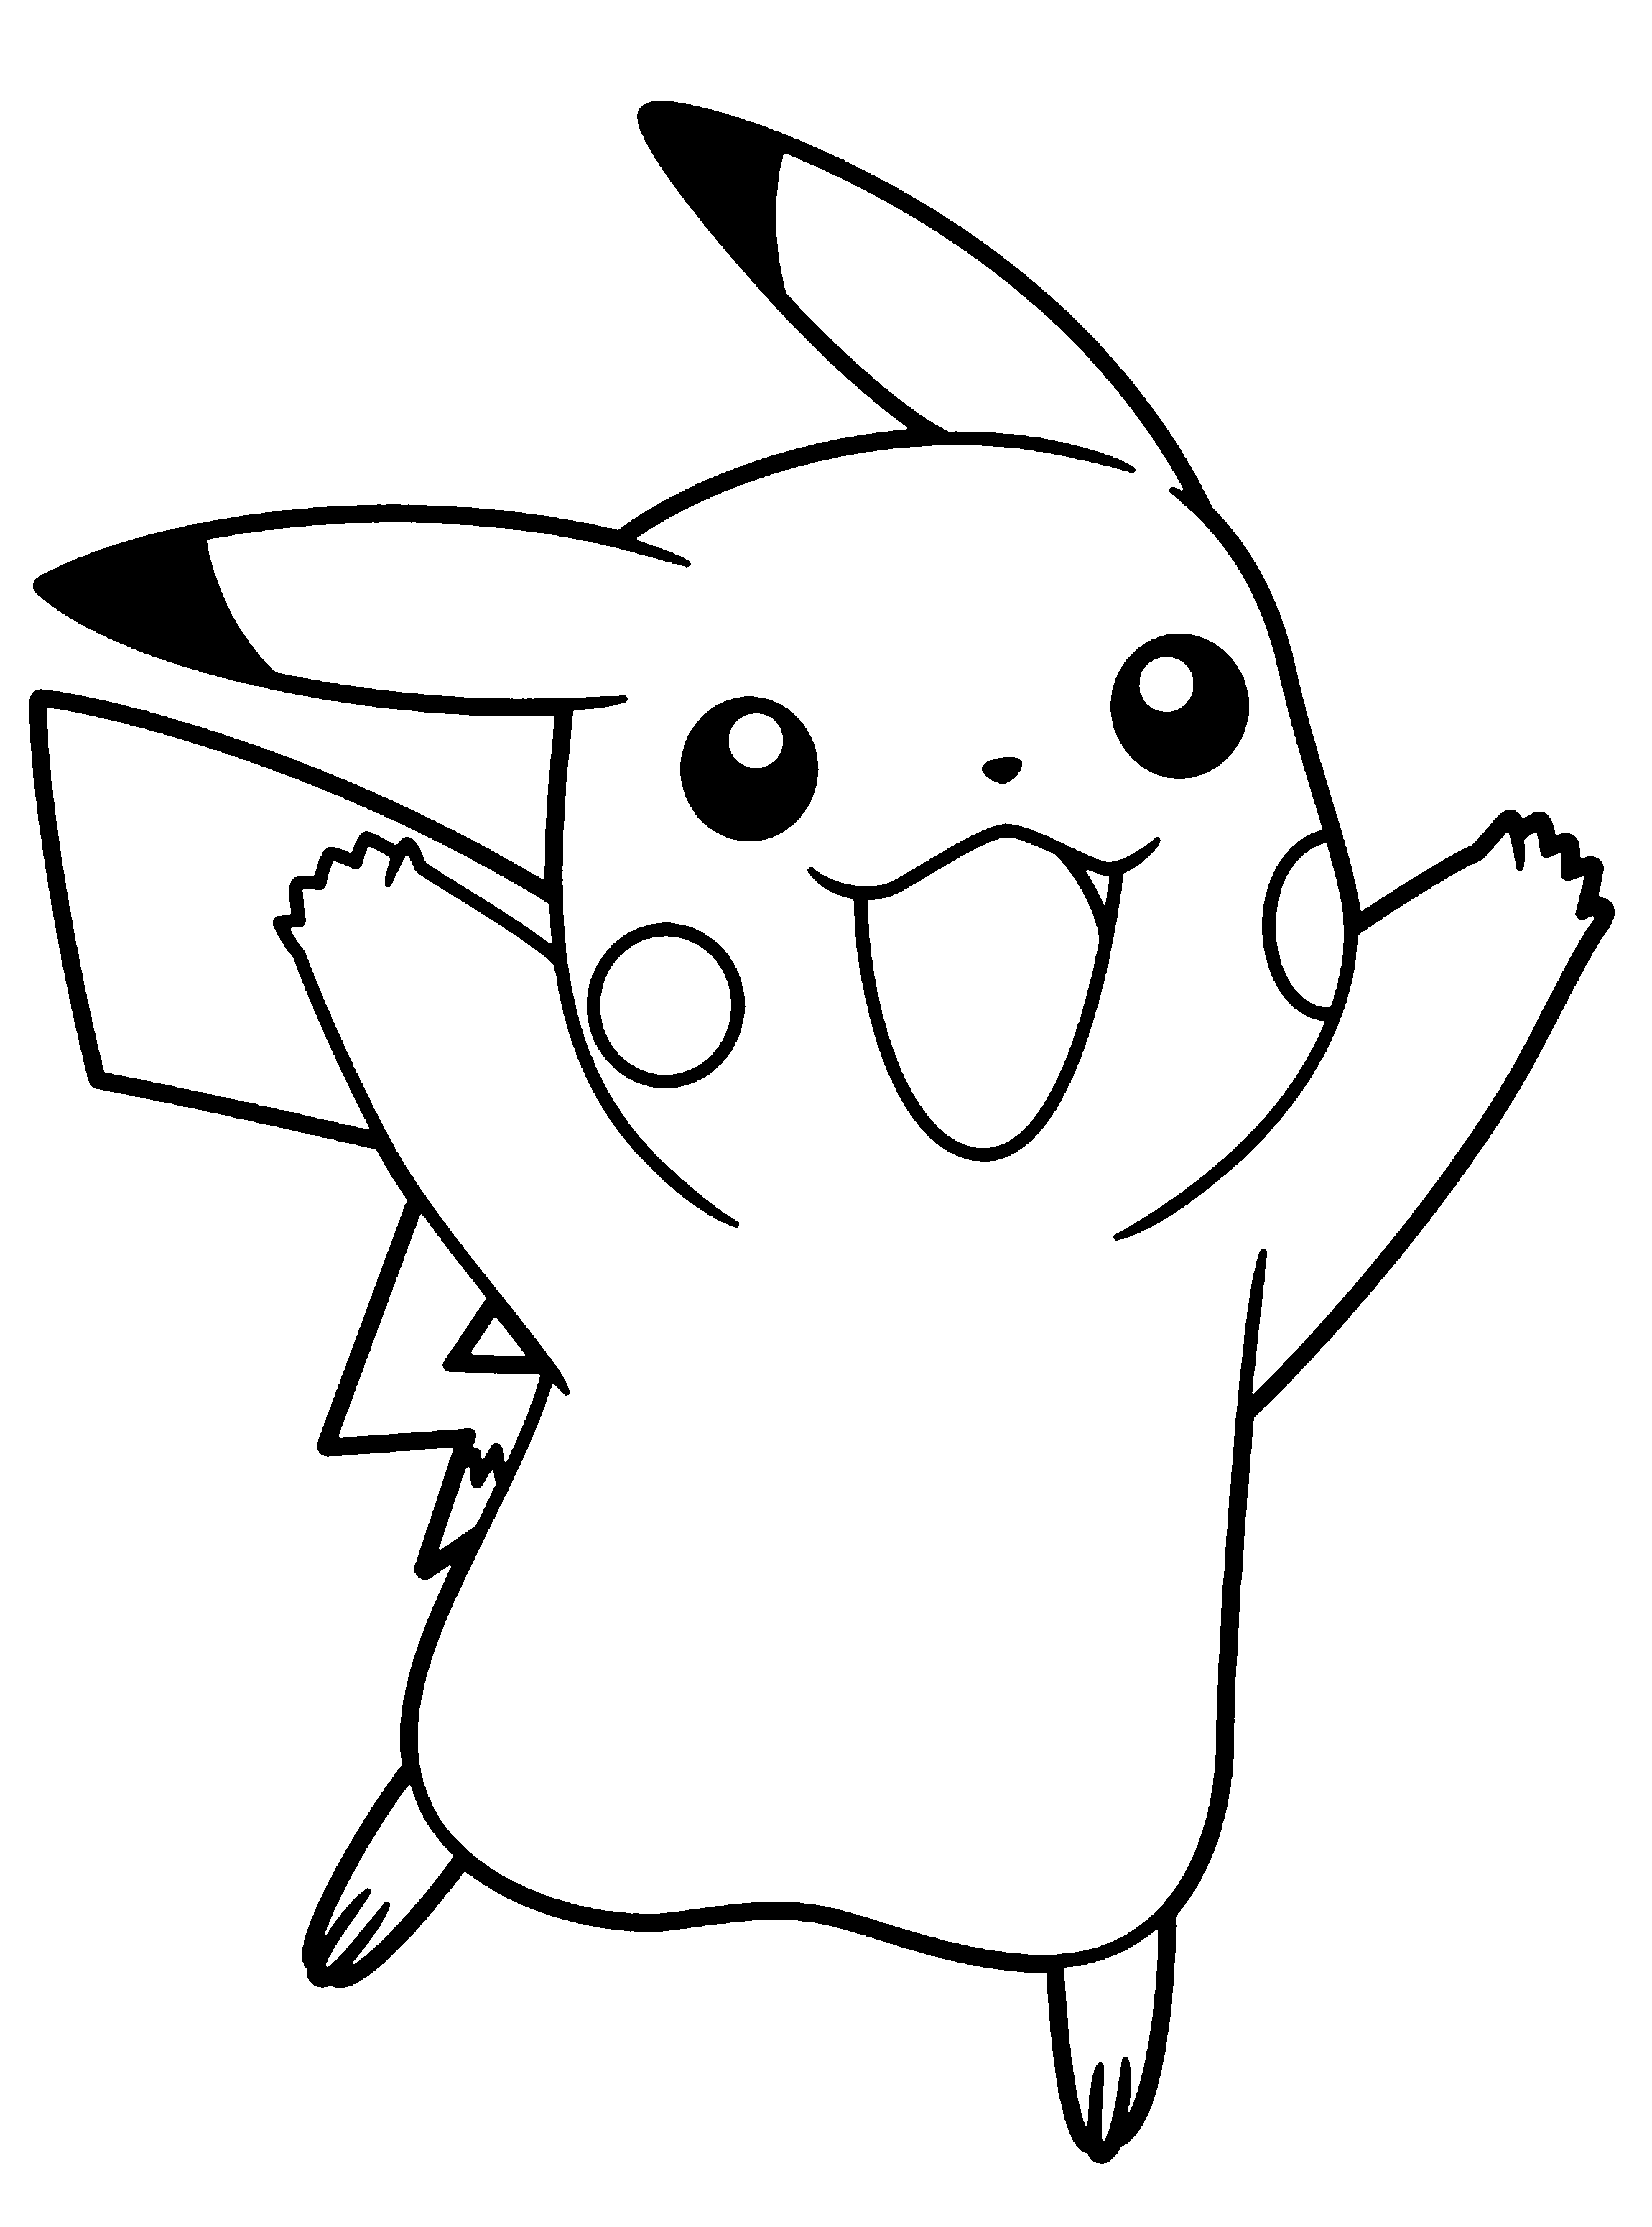 pikachu face coloring page how to draw pikachu39s face hellokidscom page pikachu face coloring